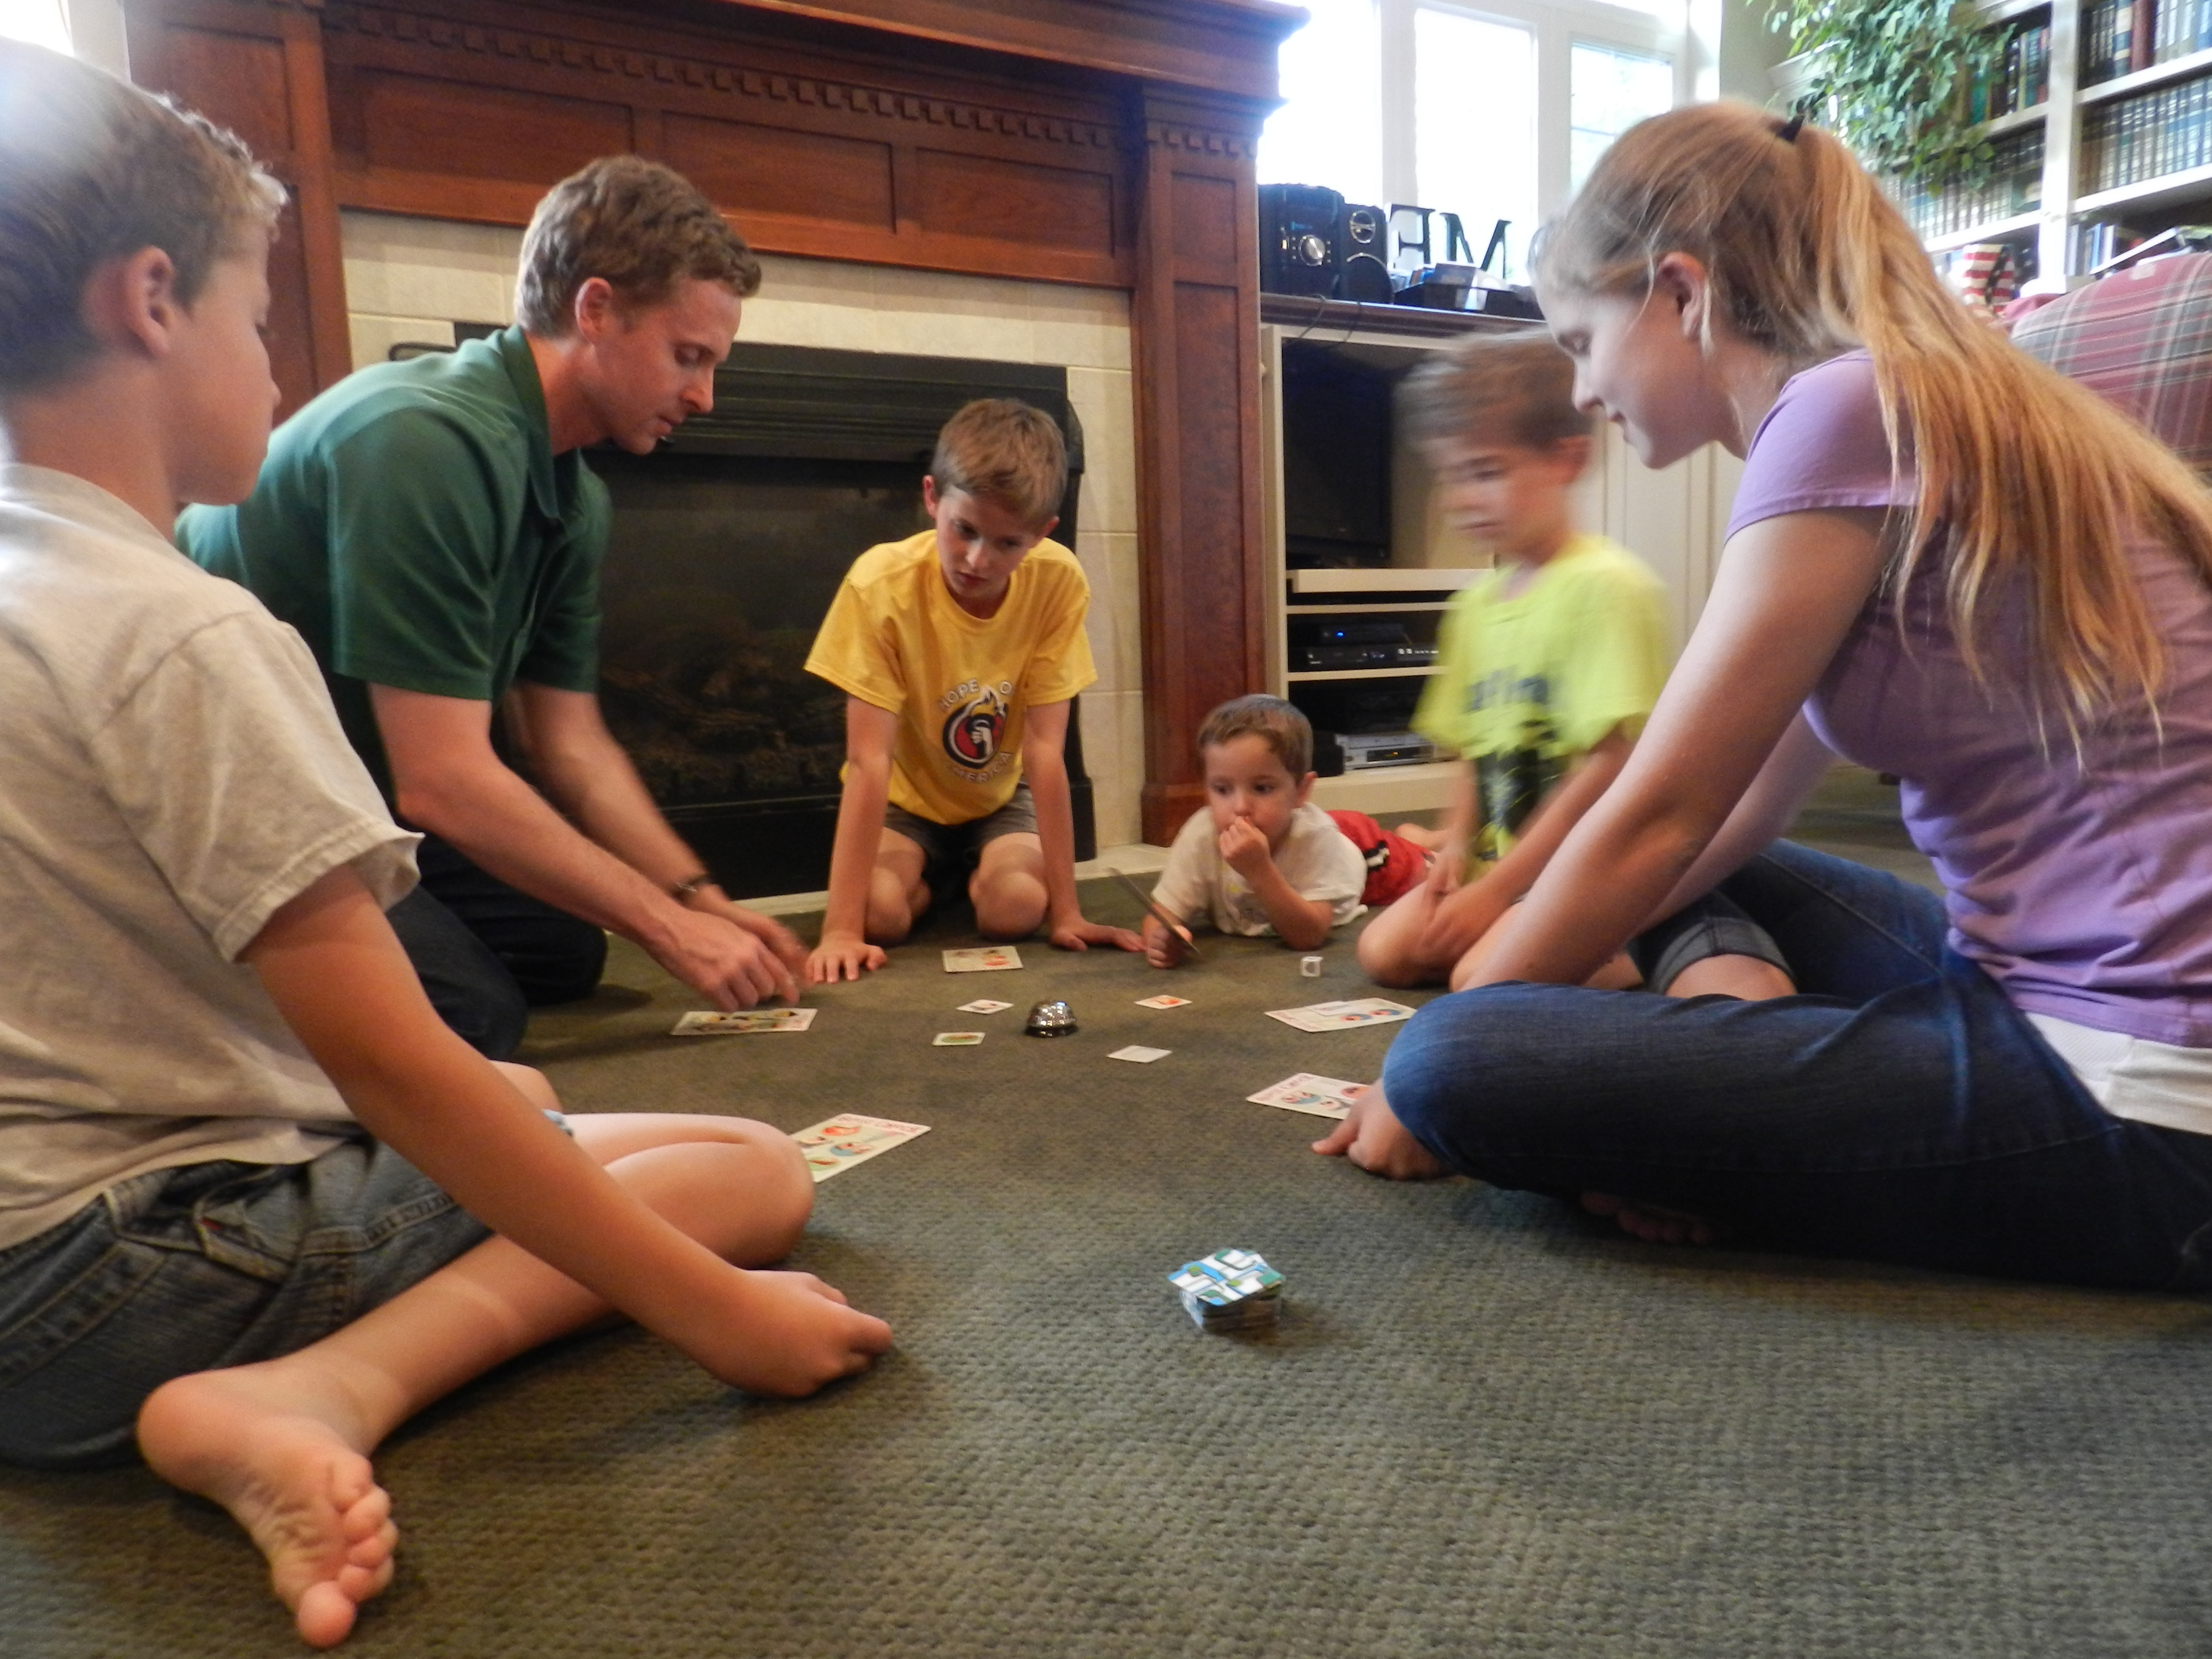 """Myles Christensen, mechanical engineering professor, loves spending time with his family, especially playing games such as """"Order's Up,"""" pictured above. This is a game he invented where players rush to serve a table of hungry customers. (Jeffrey Allen)"""